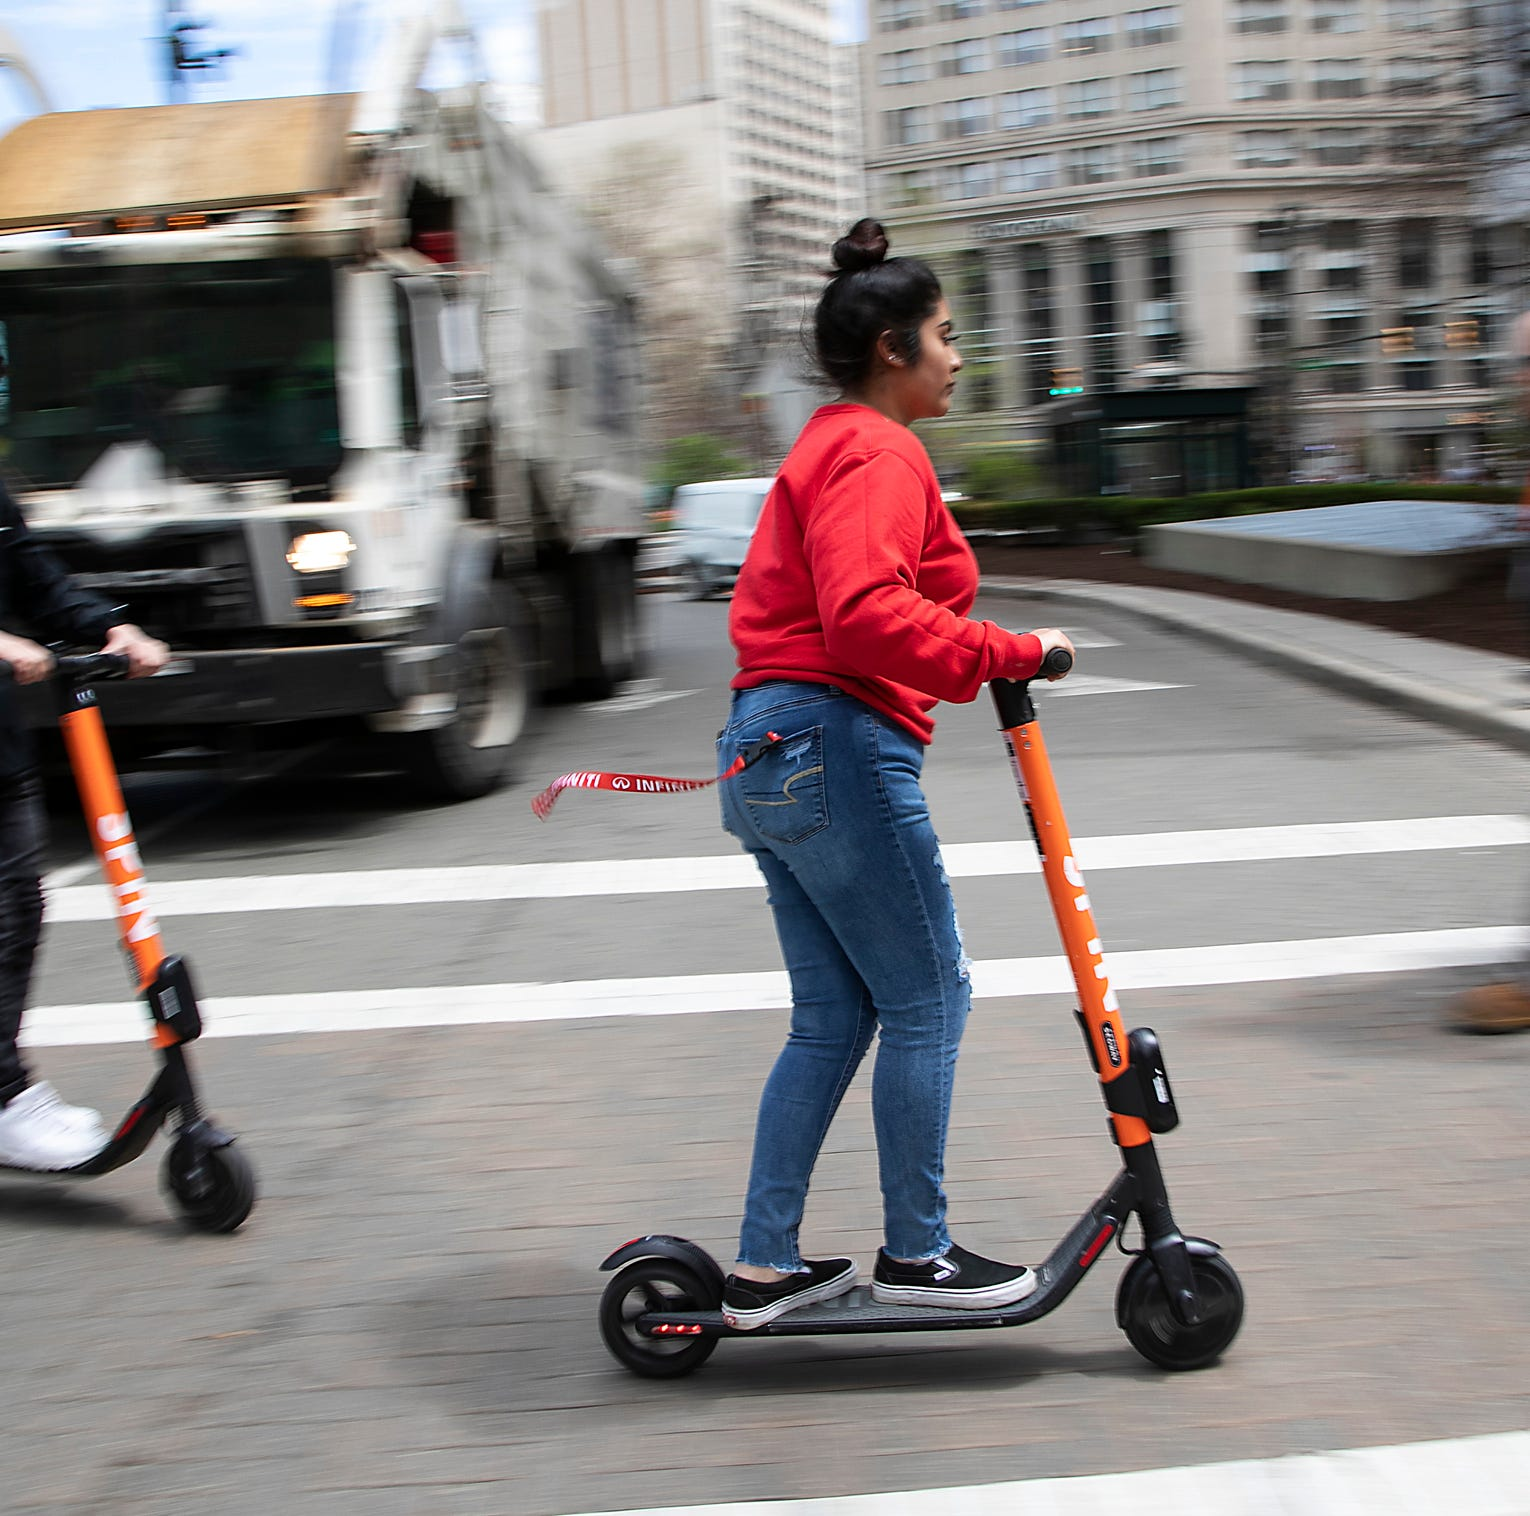 Scooter sharing could launch in Rochester this summer